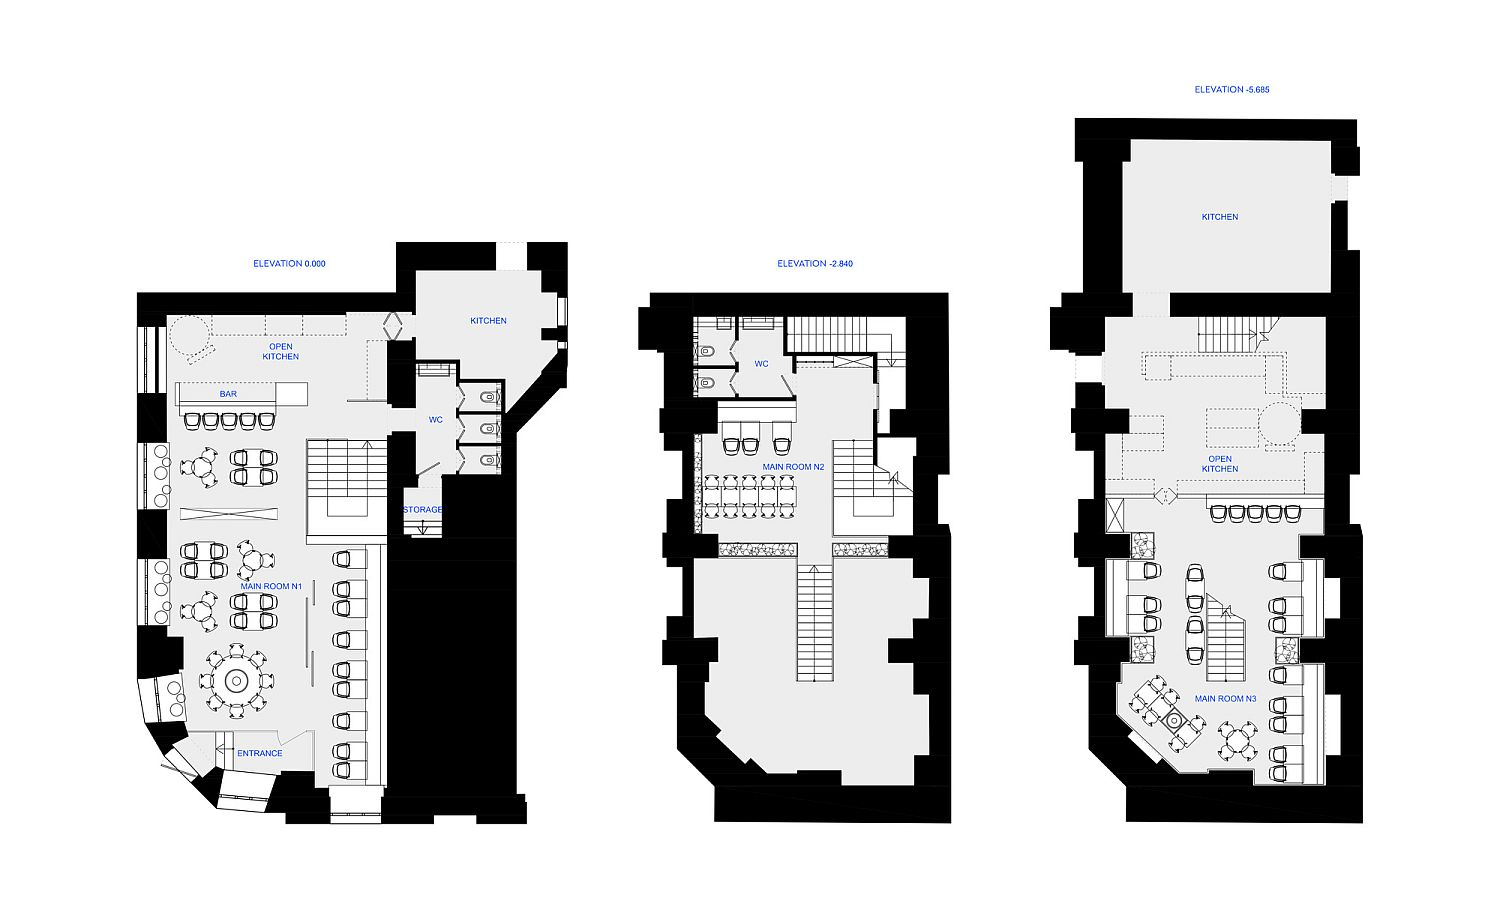 Floor plan of Pizza 22 in Moscow